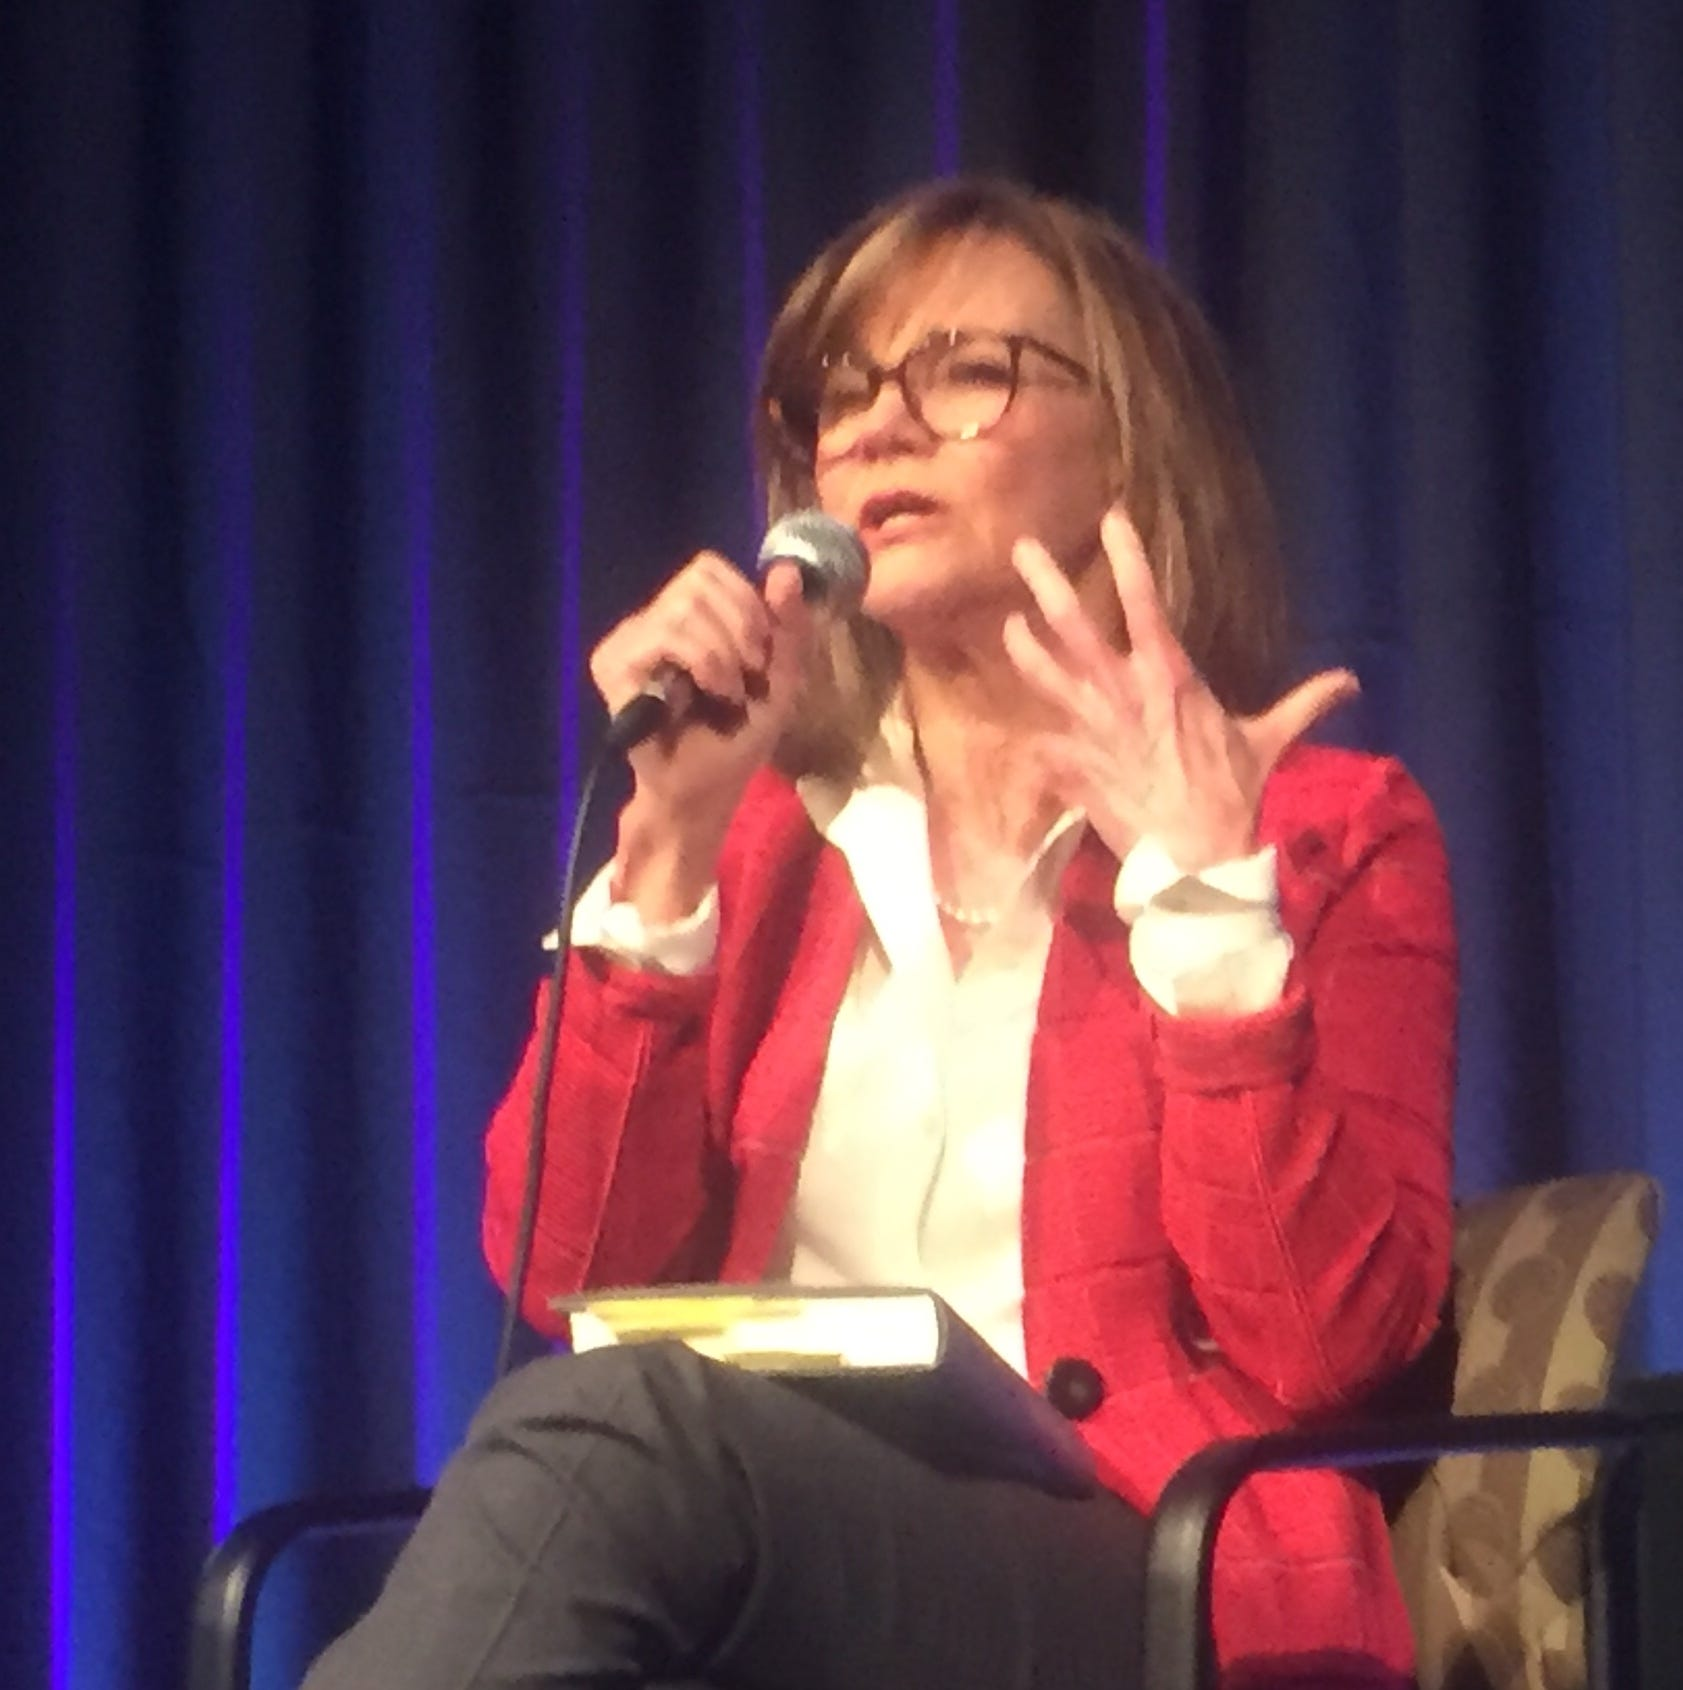 Sally Field picks up pieces of her life and moves on to wrap Rancho Mirage Writers Festival